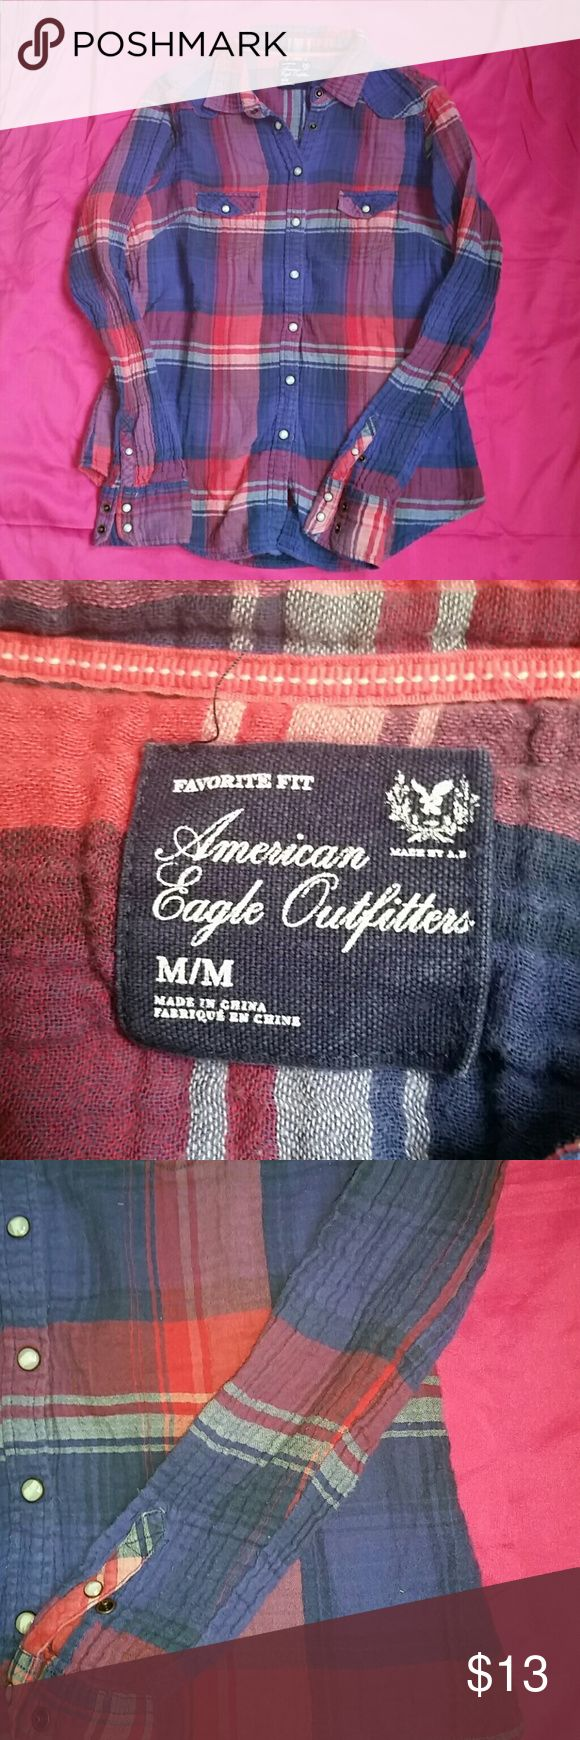 """American Eagle Outfitters size M """"flannel """" American Eagle Outfitters size M """"flannel"""" like shirt. """"Favorite Fit """". Shirt snaps down the front. Sleeves have a wrinkled look. American Eagle Outfitters Tops Button Down Shirts"""